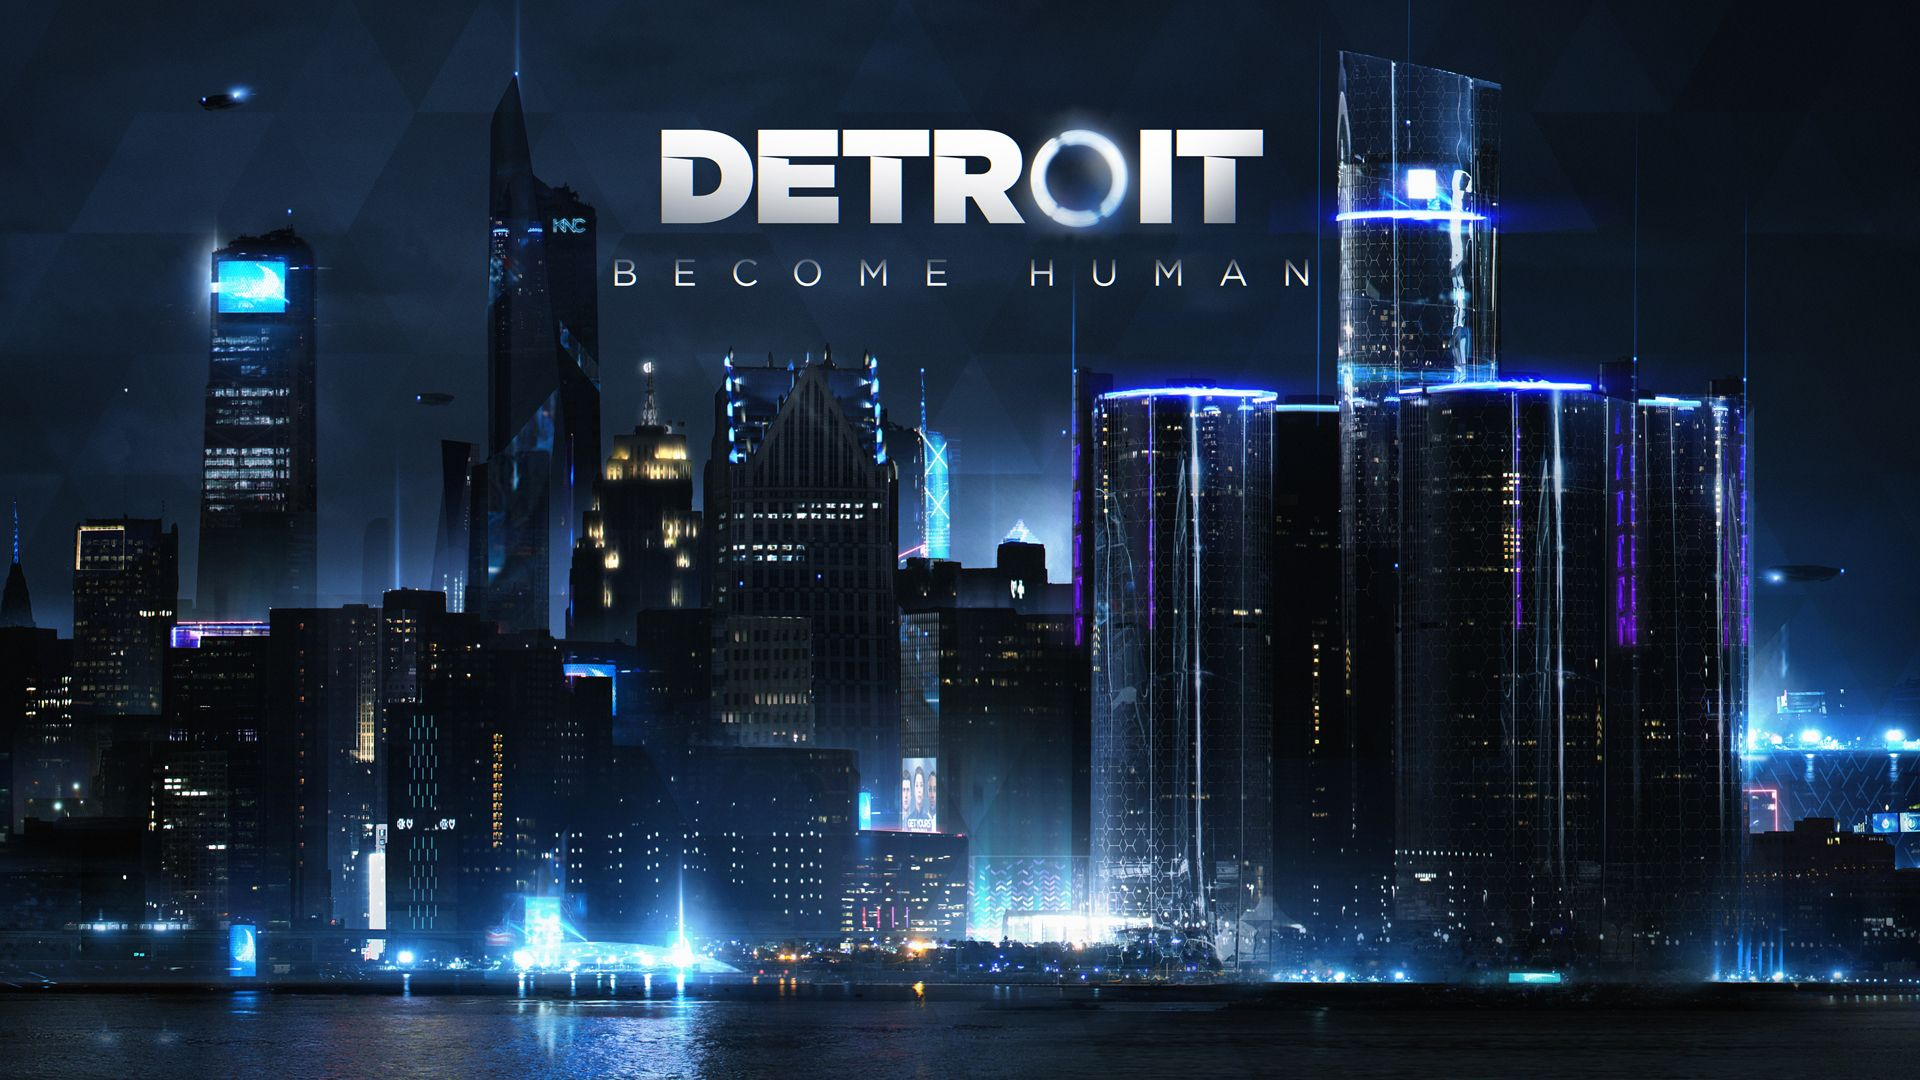 detroit become human connor wallpaper